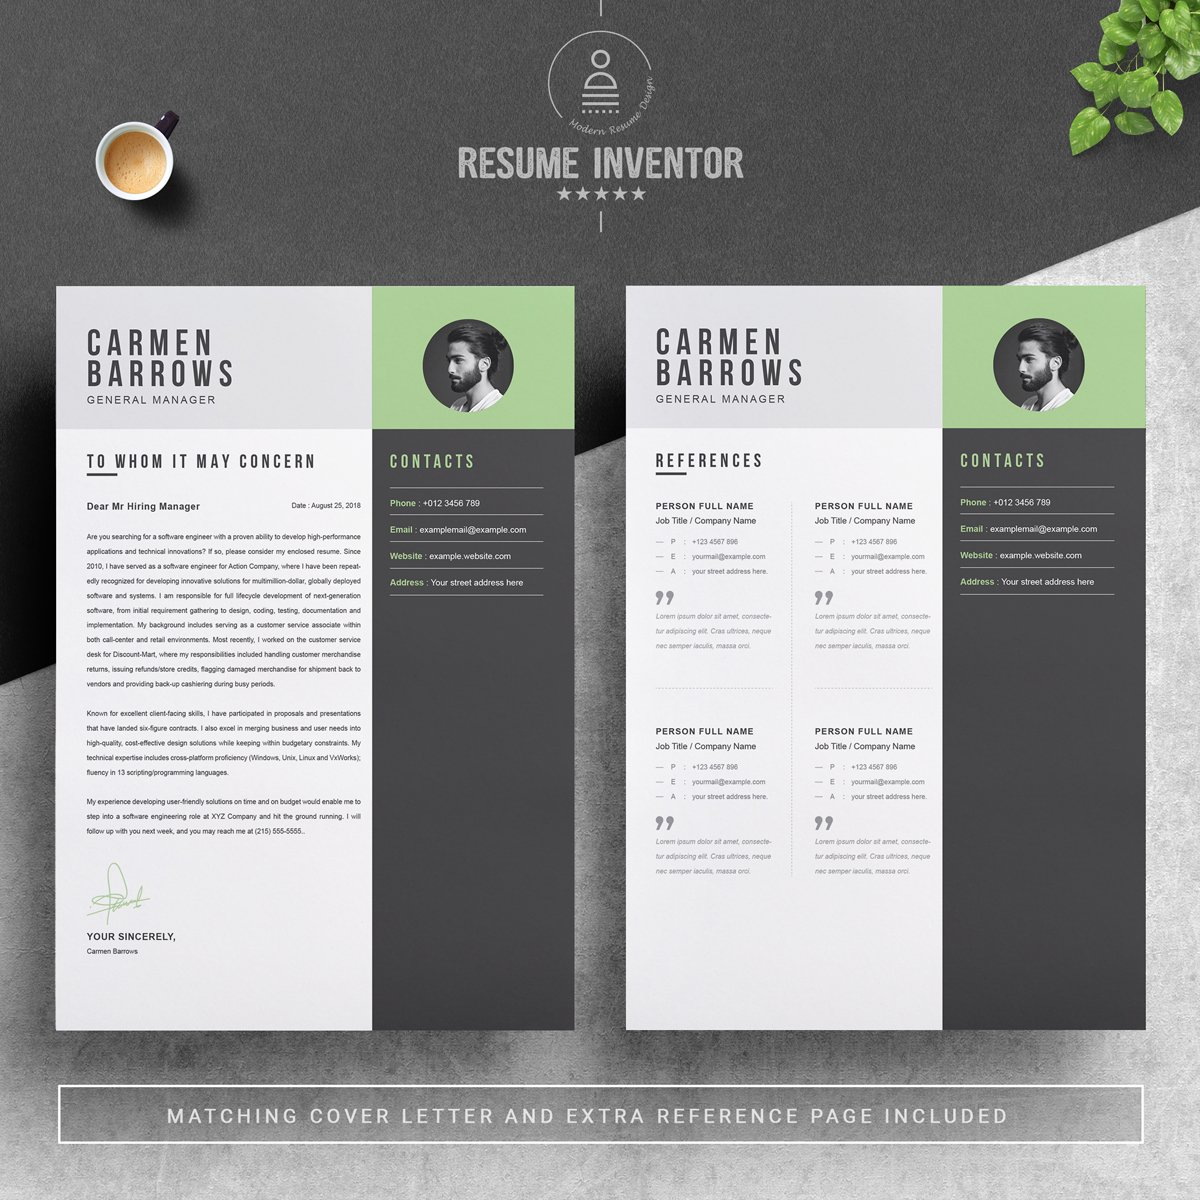 https://s3u.tmimgcdn.com/1860567-1577966856427_03_2-Pages-Free-Resume-Design-Template.jpg